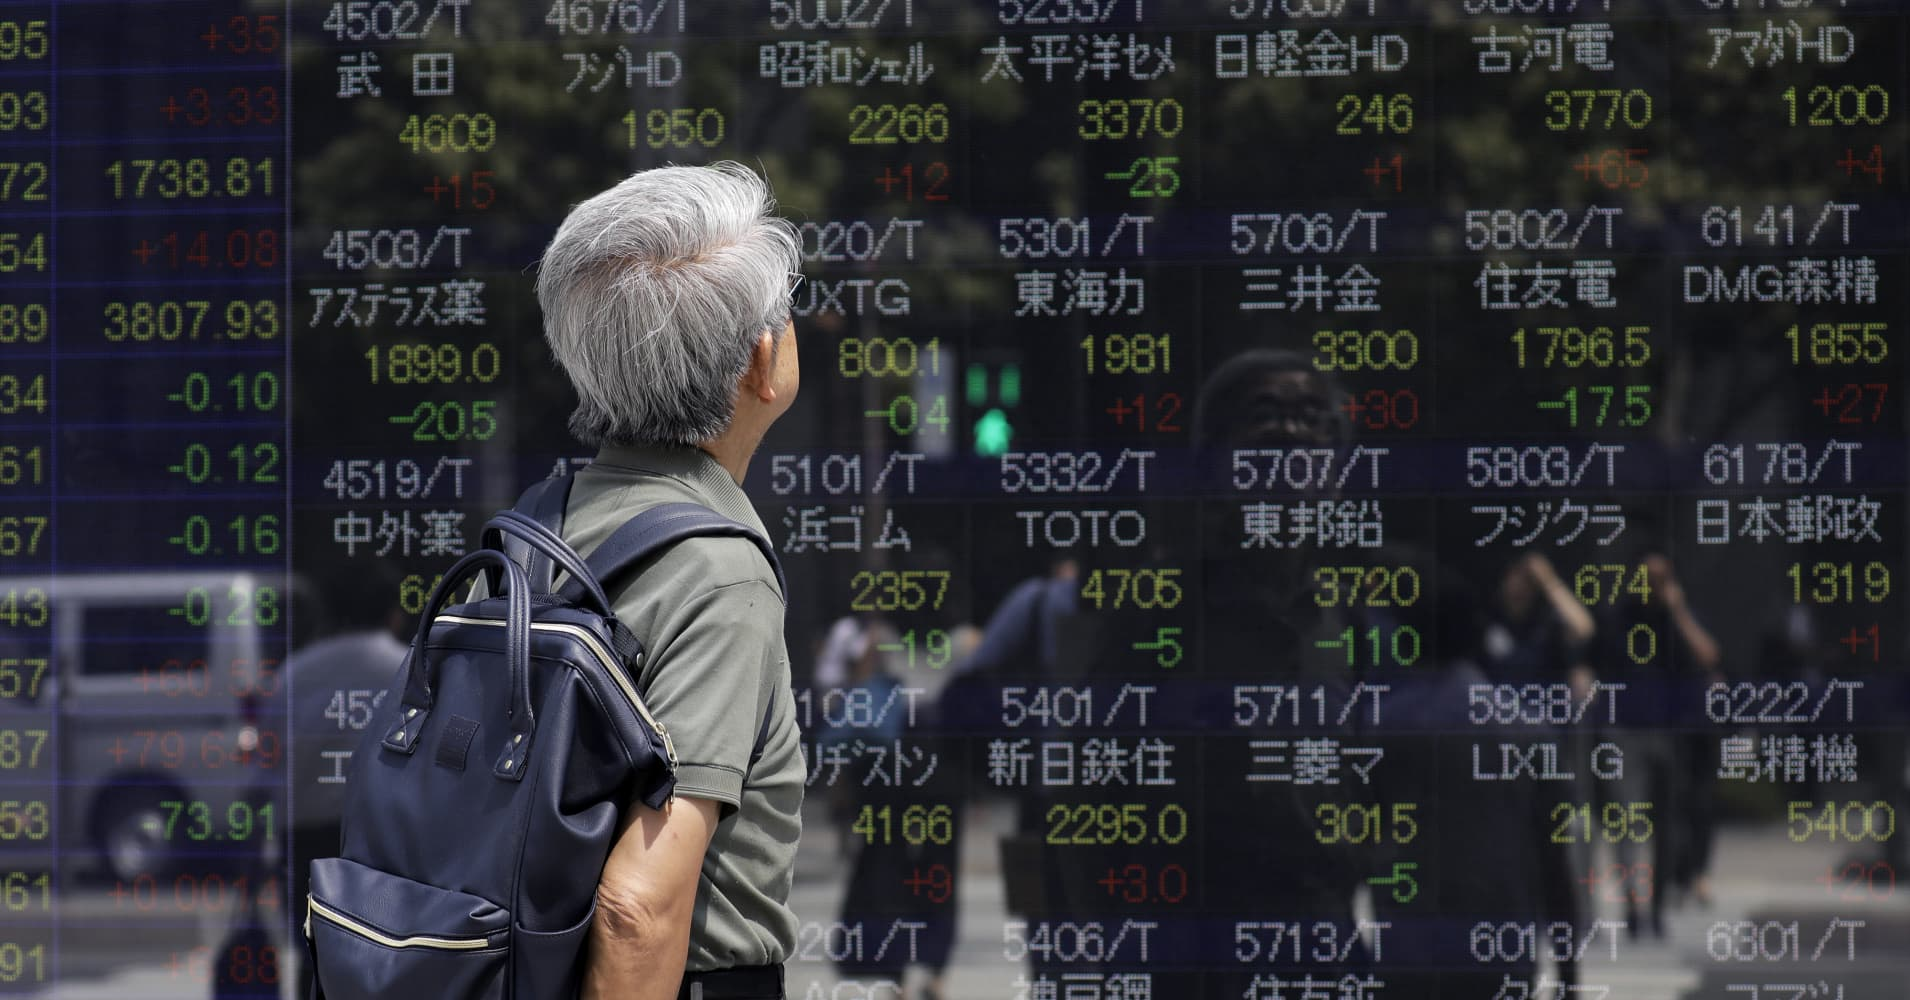 Asia markets down after Fed Chair Powell spurs Wall Street declines